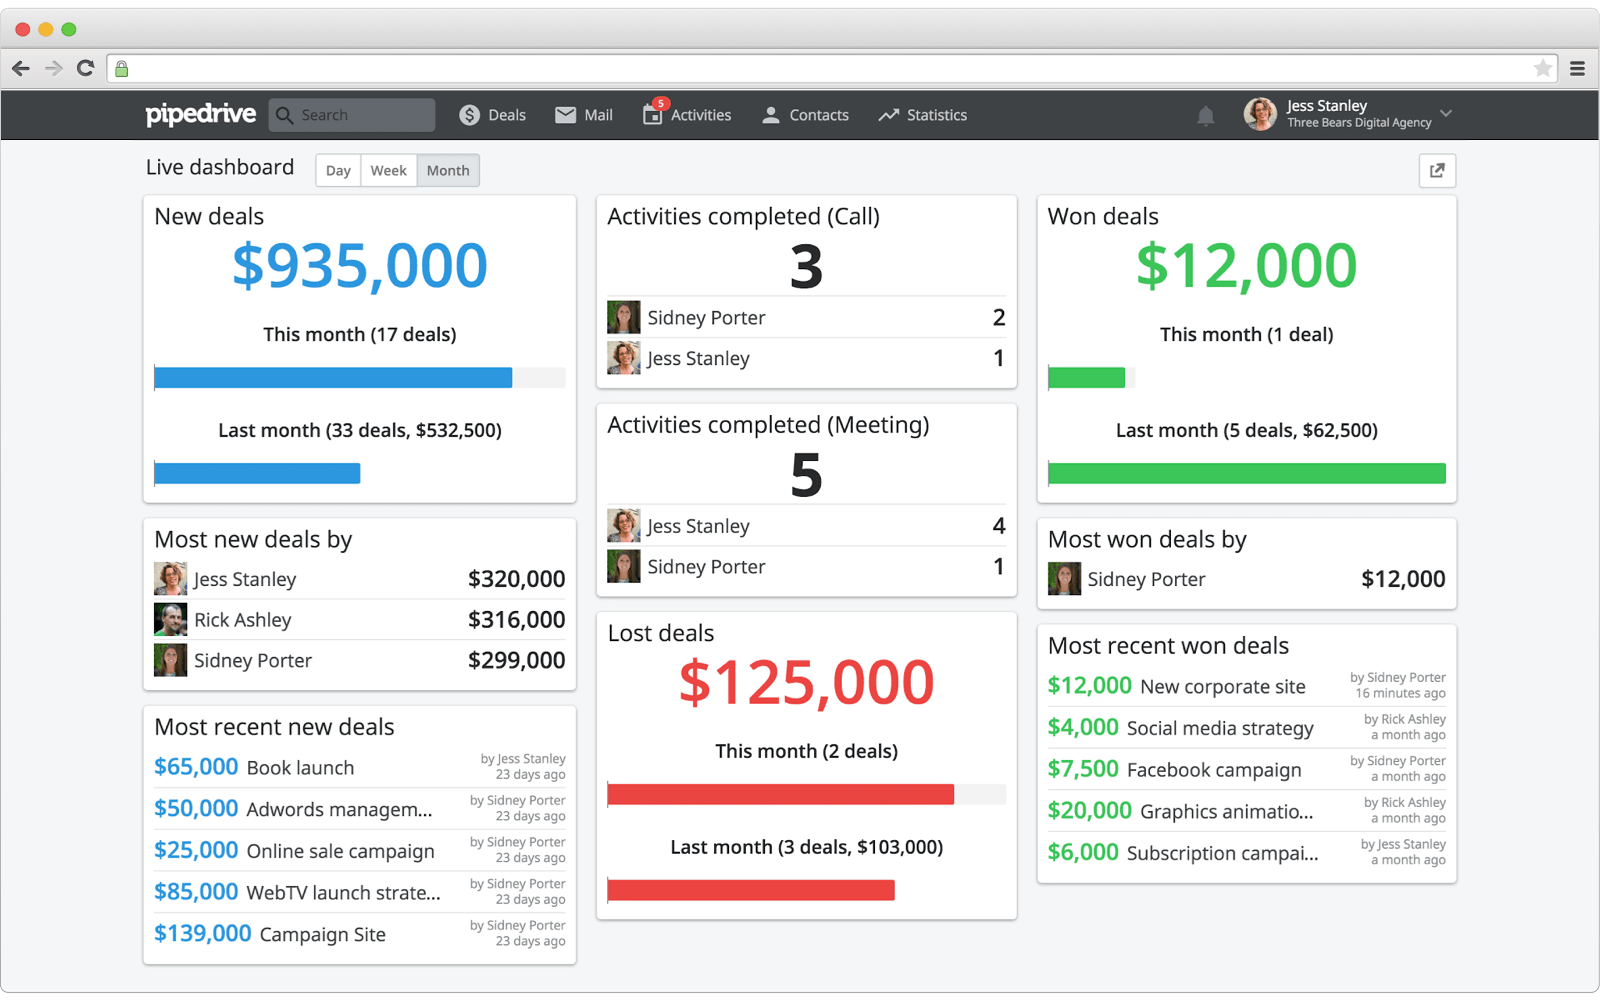 Dashboard interface in Pipedrive CRM for real estate